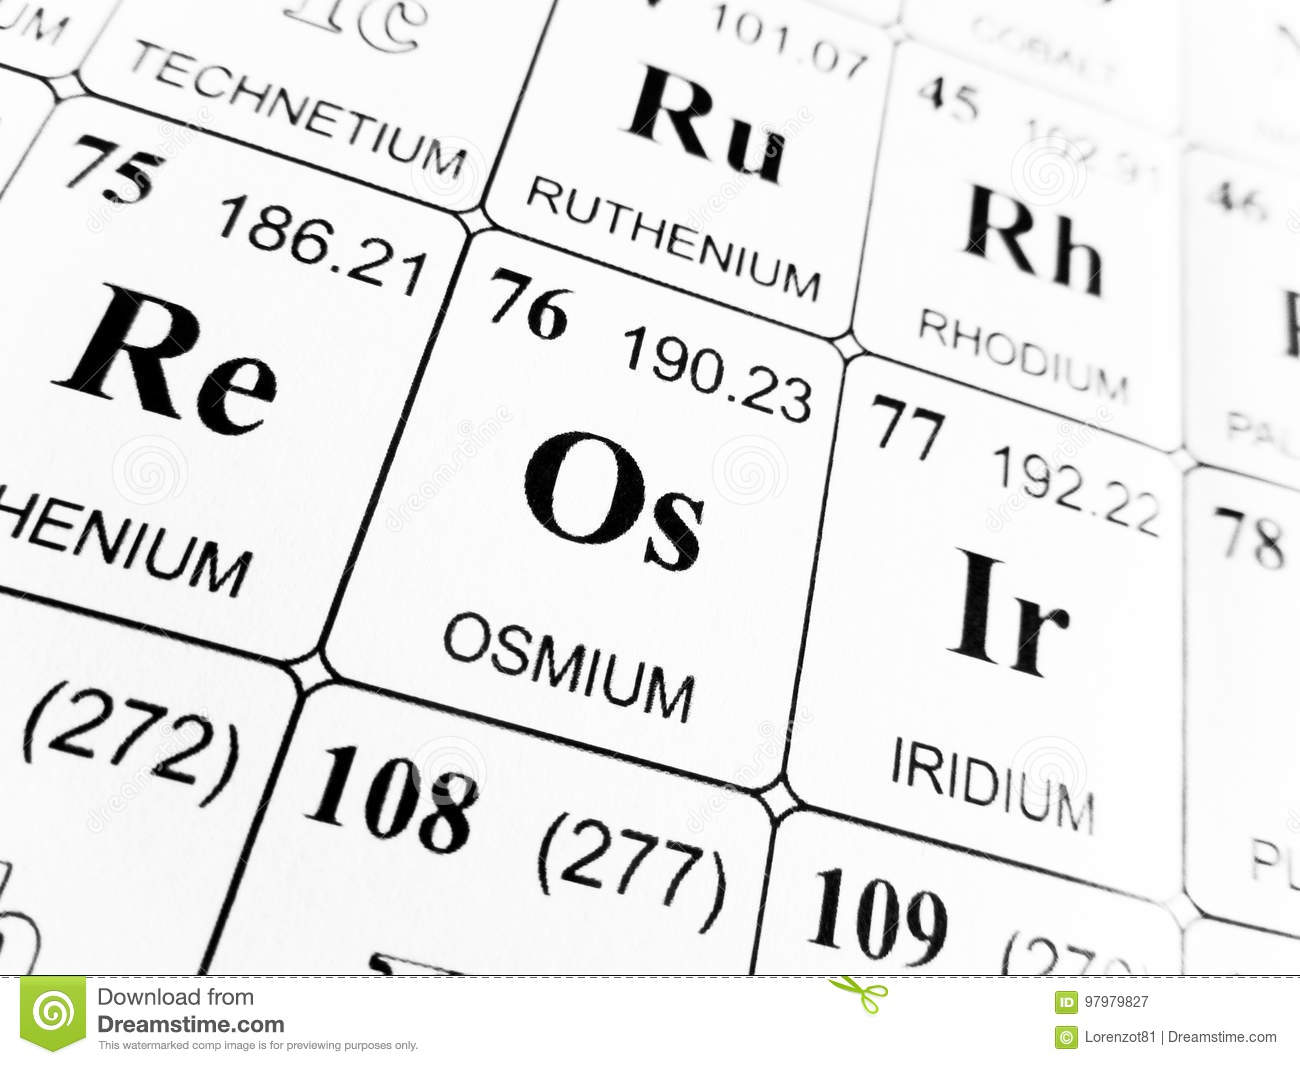 Osmium on the periodic table of the elements stock image image of download osmium on the periodic table of the elements stock image image of element urtaz Gallery